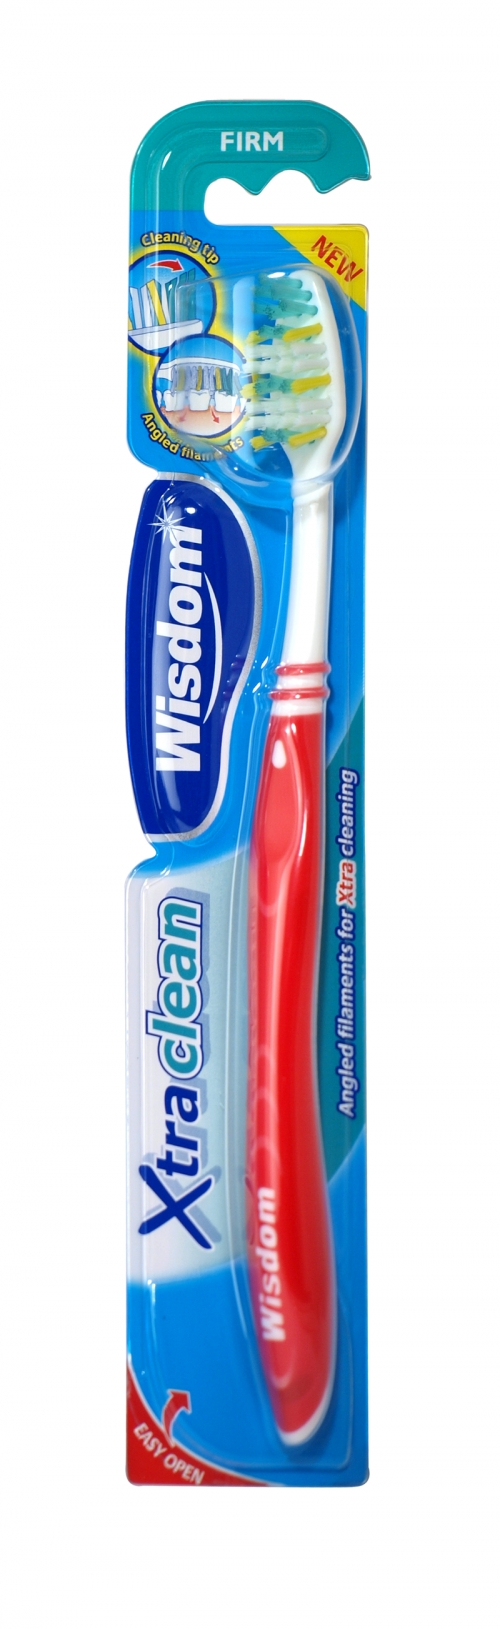 WISDOM XTRA CLEAN TOOTHBRUSHES FIRM X12